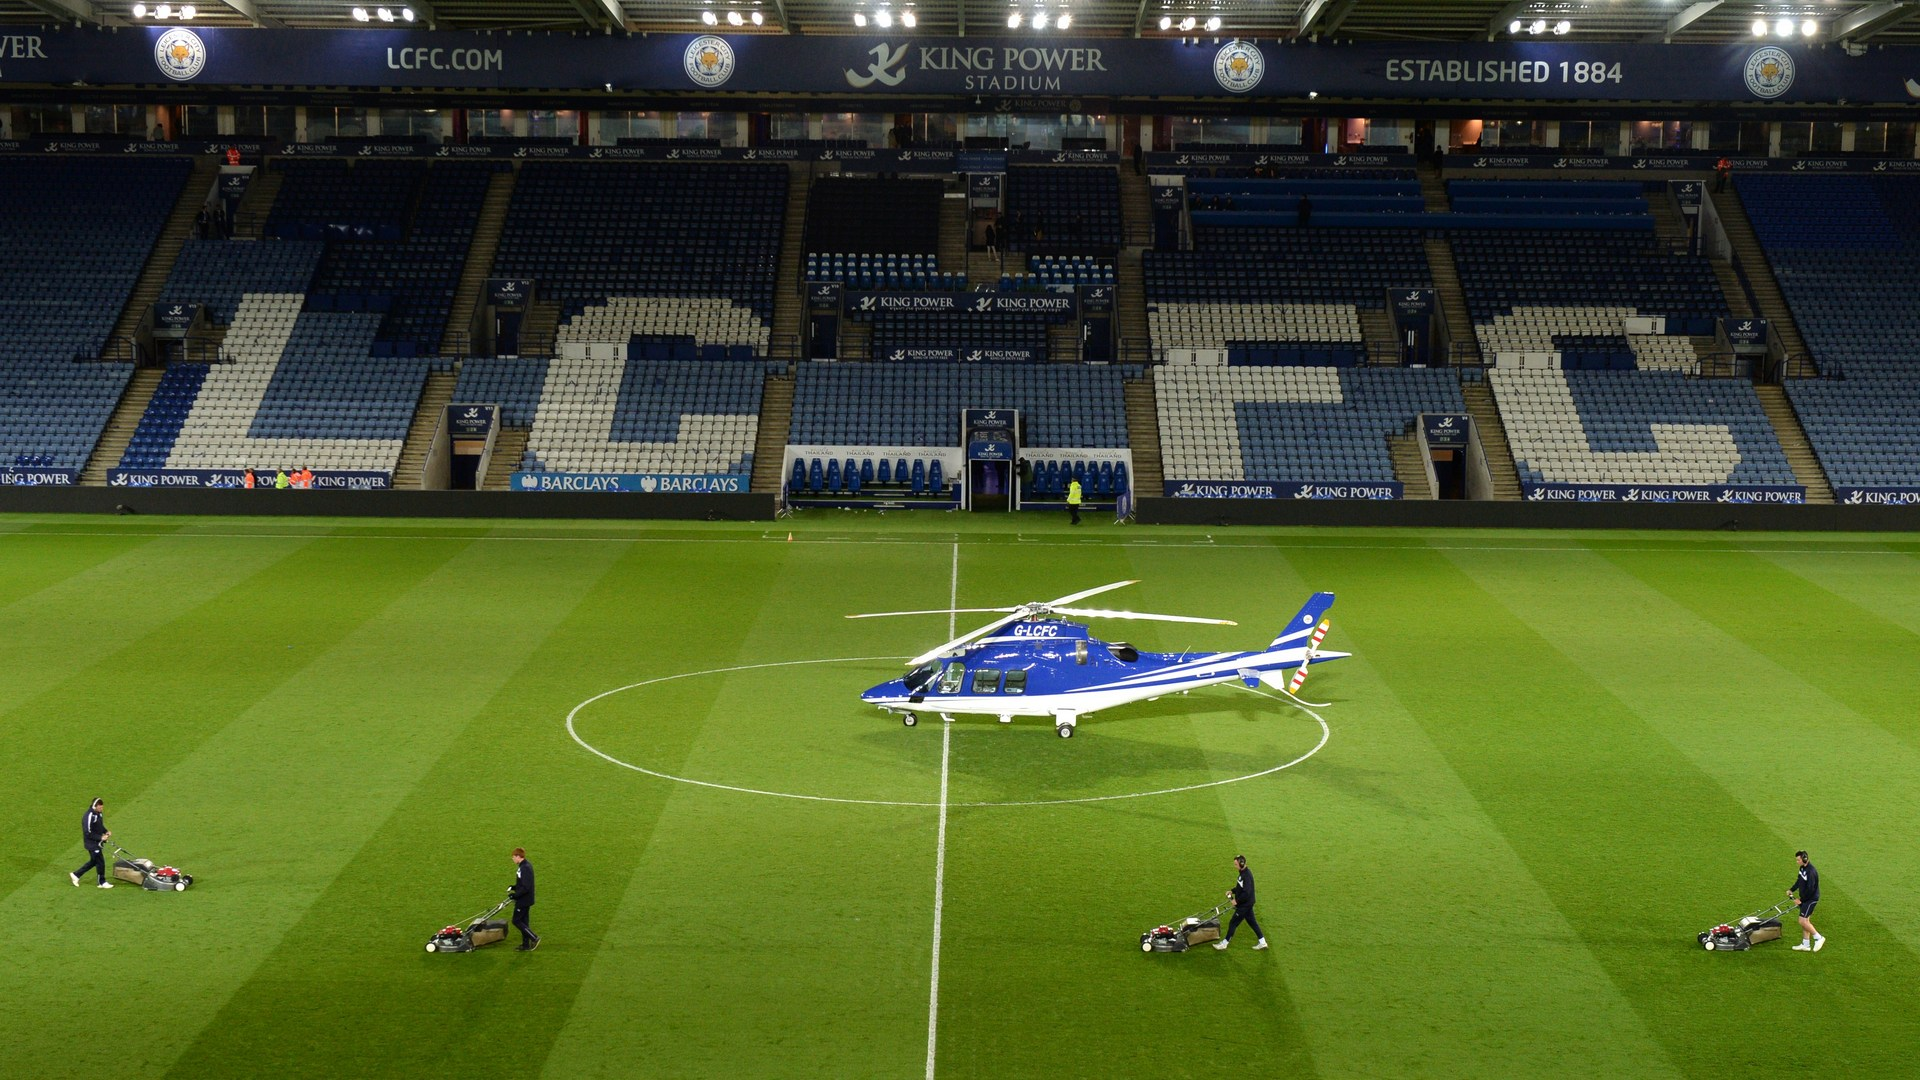 Leicester City owner's helicopter crashes outside King Power Stadium